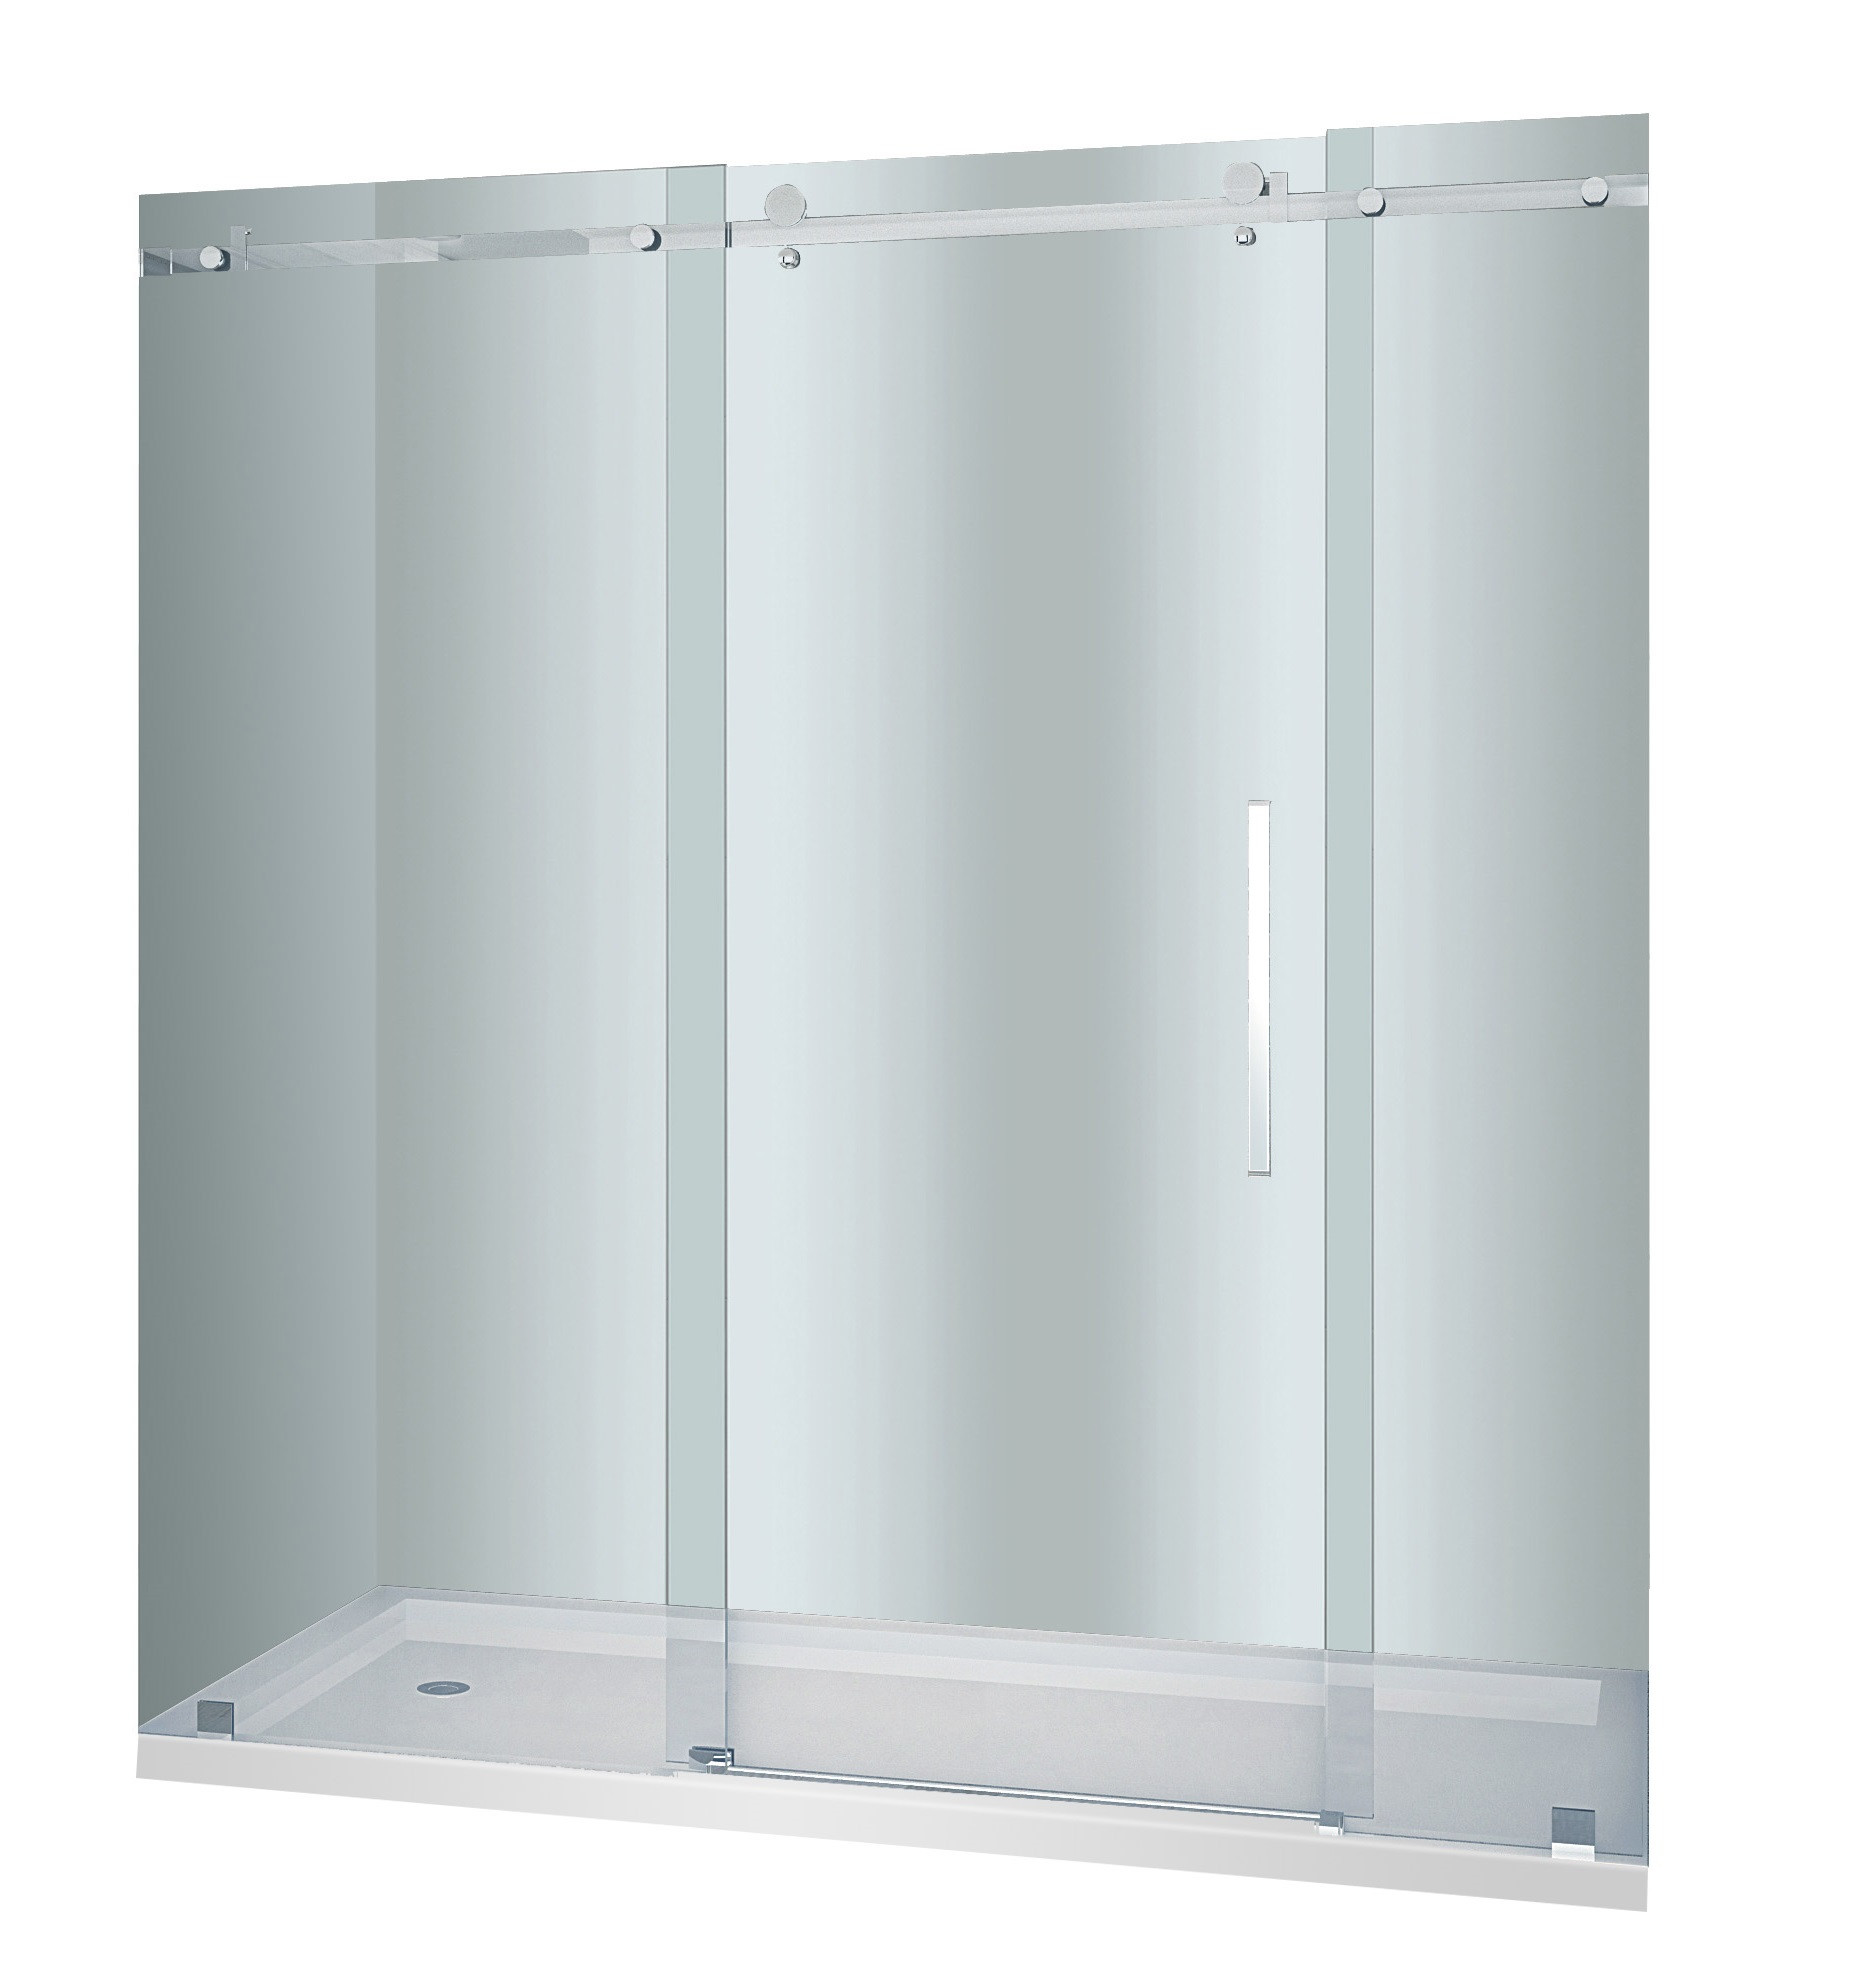 Aston Global SDR976-TR-CH-72-10-L Sliding Shower Door In Chrome With Base and Left Drain